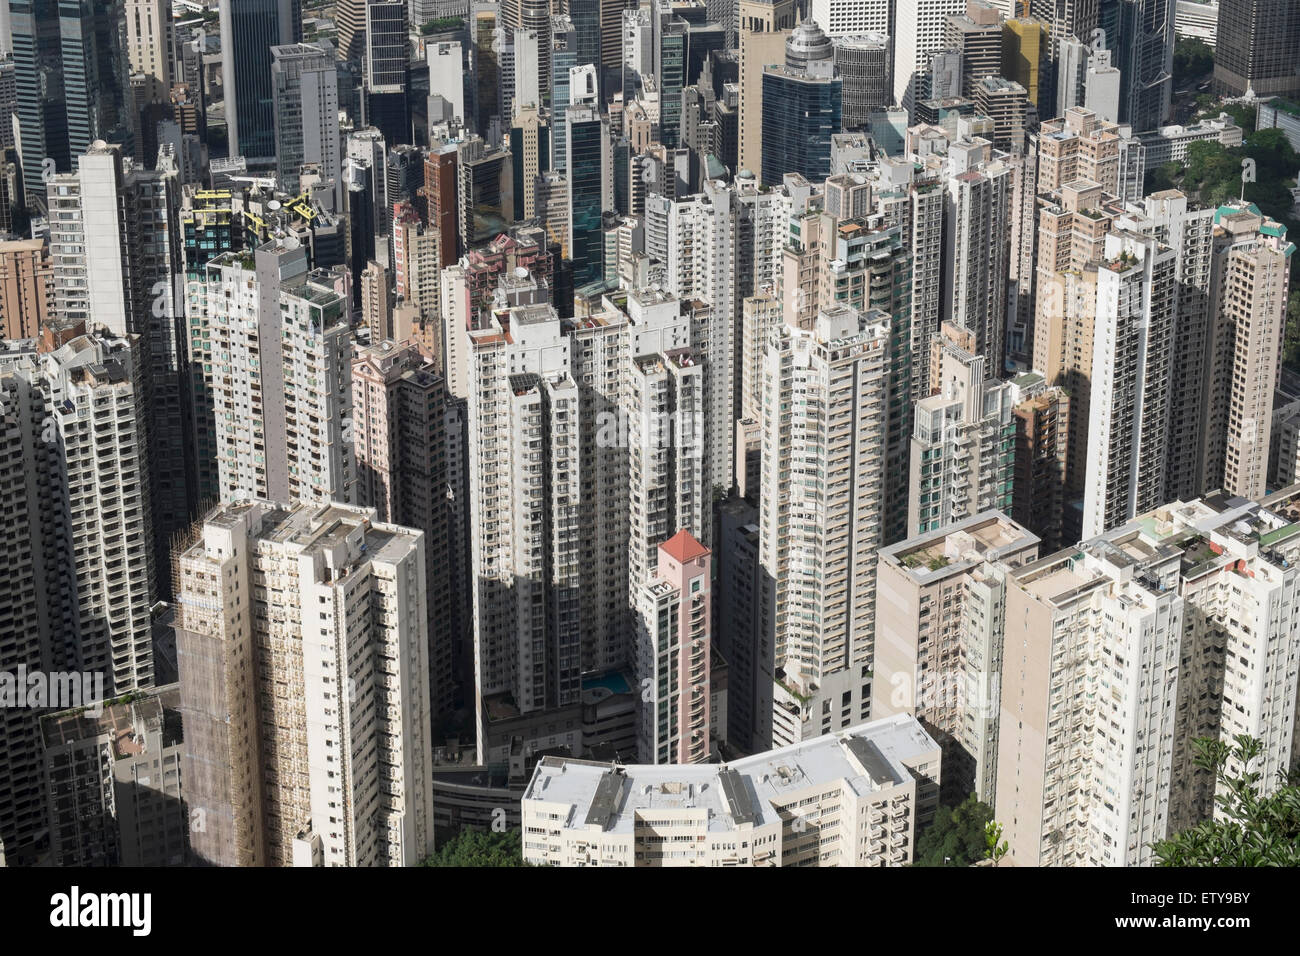 View of many high-rise apartment buildings in dense urban district of Hong Kong China - Stock Image